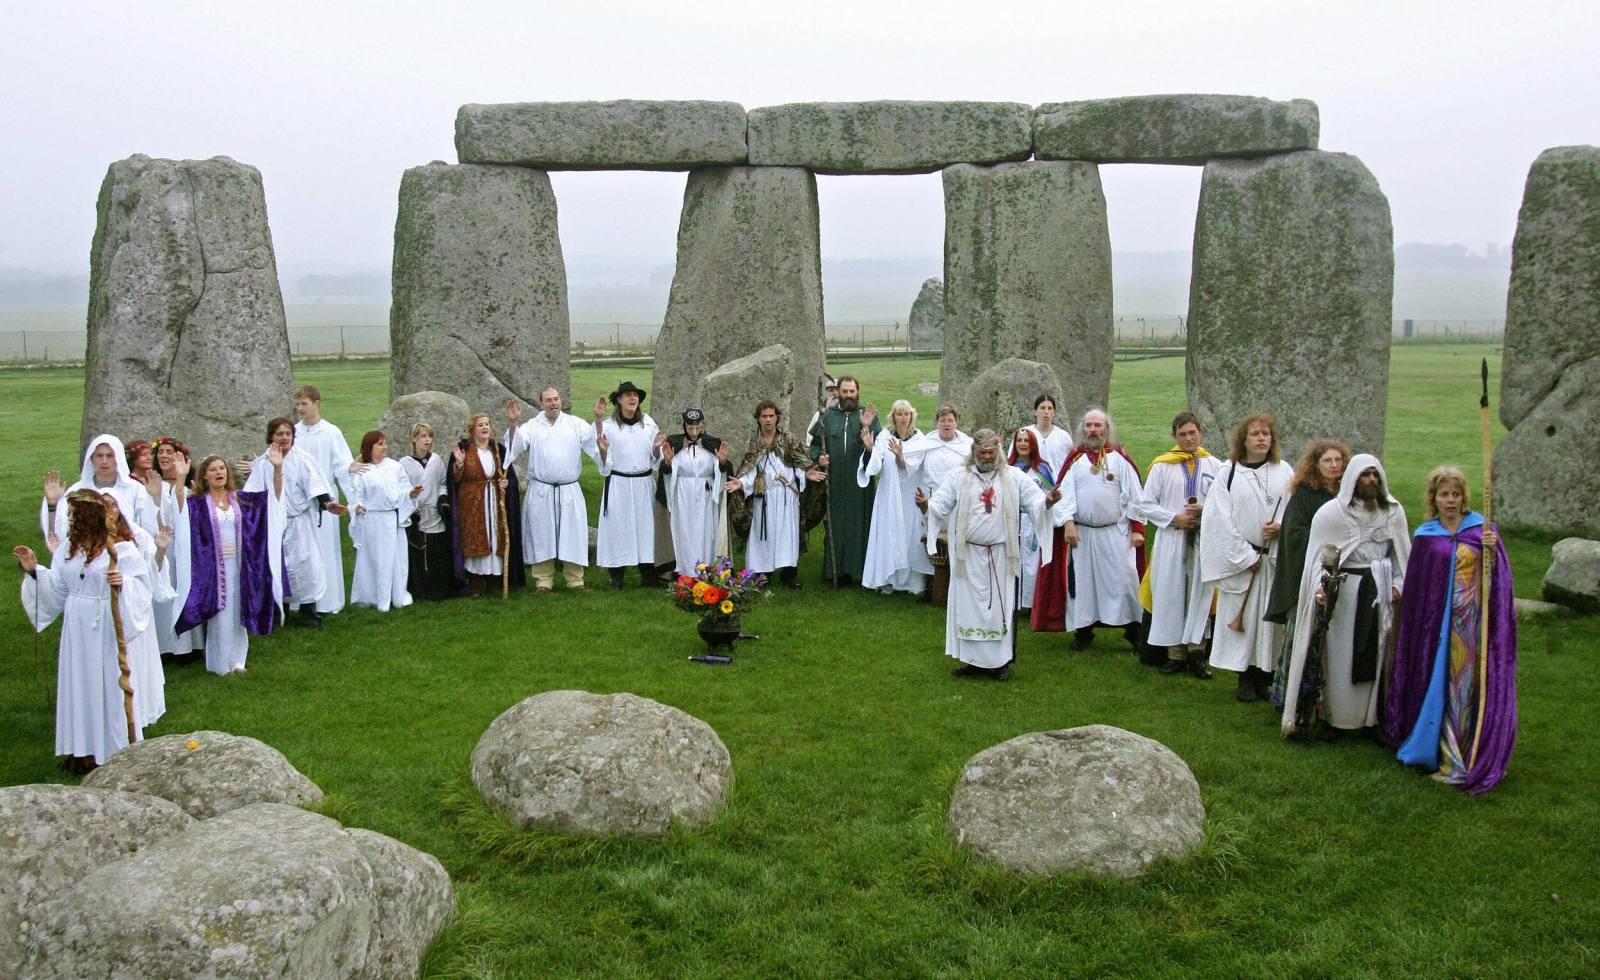 Druids perfoming a pagan Samhain blessing ceremony at Stonehenge during the month of October